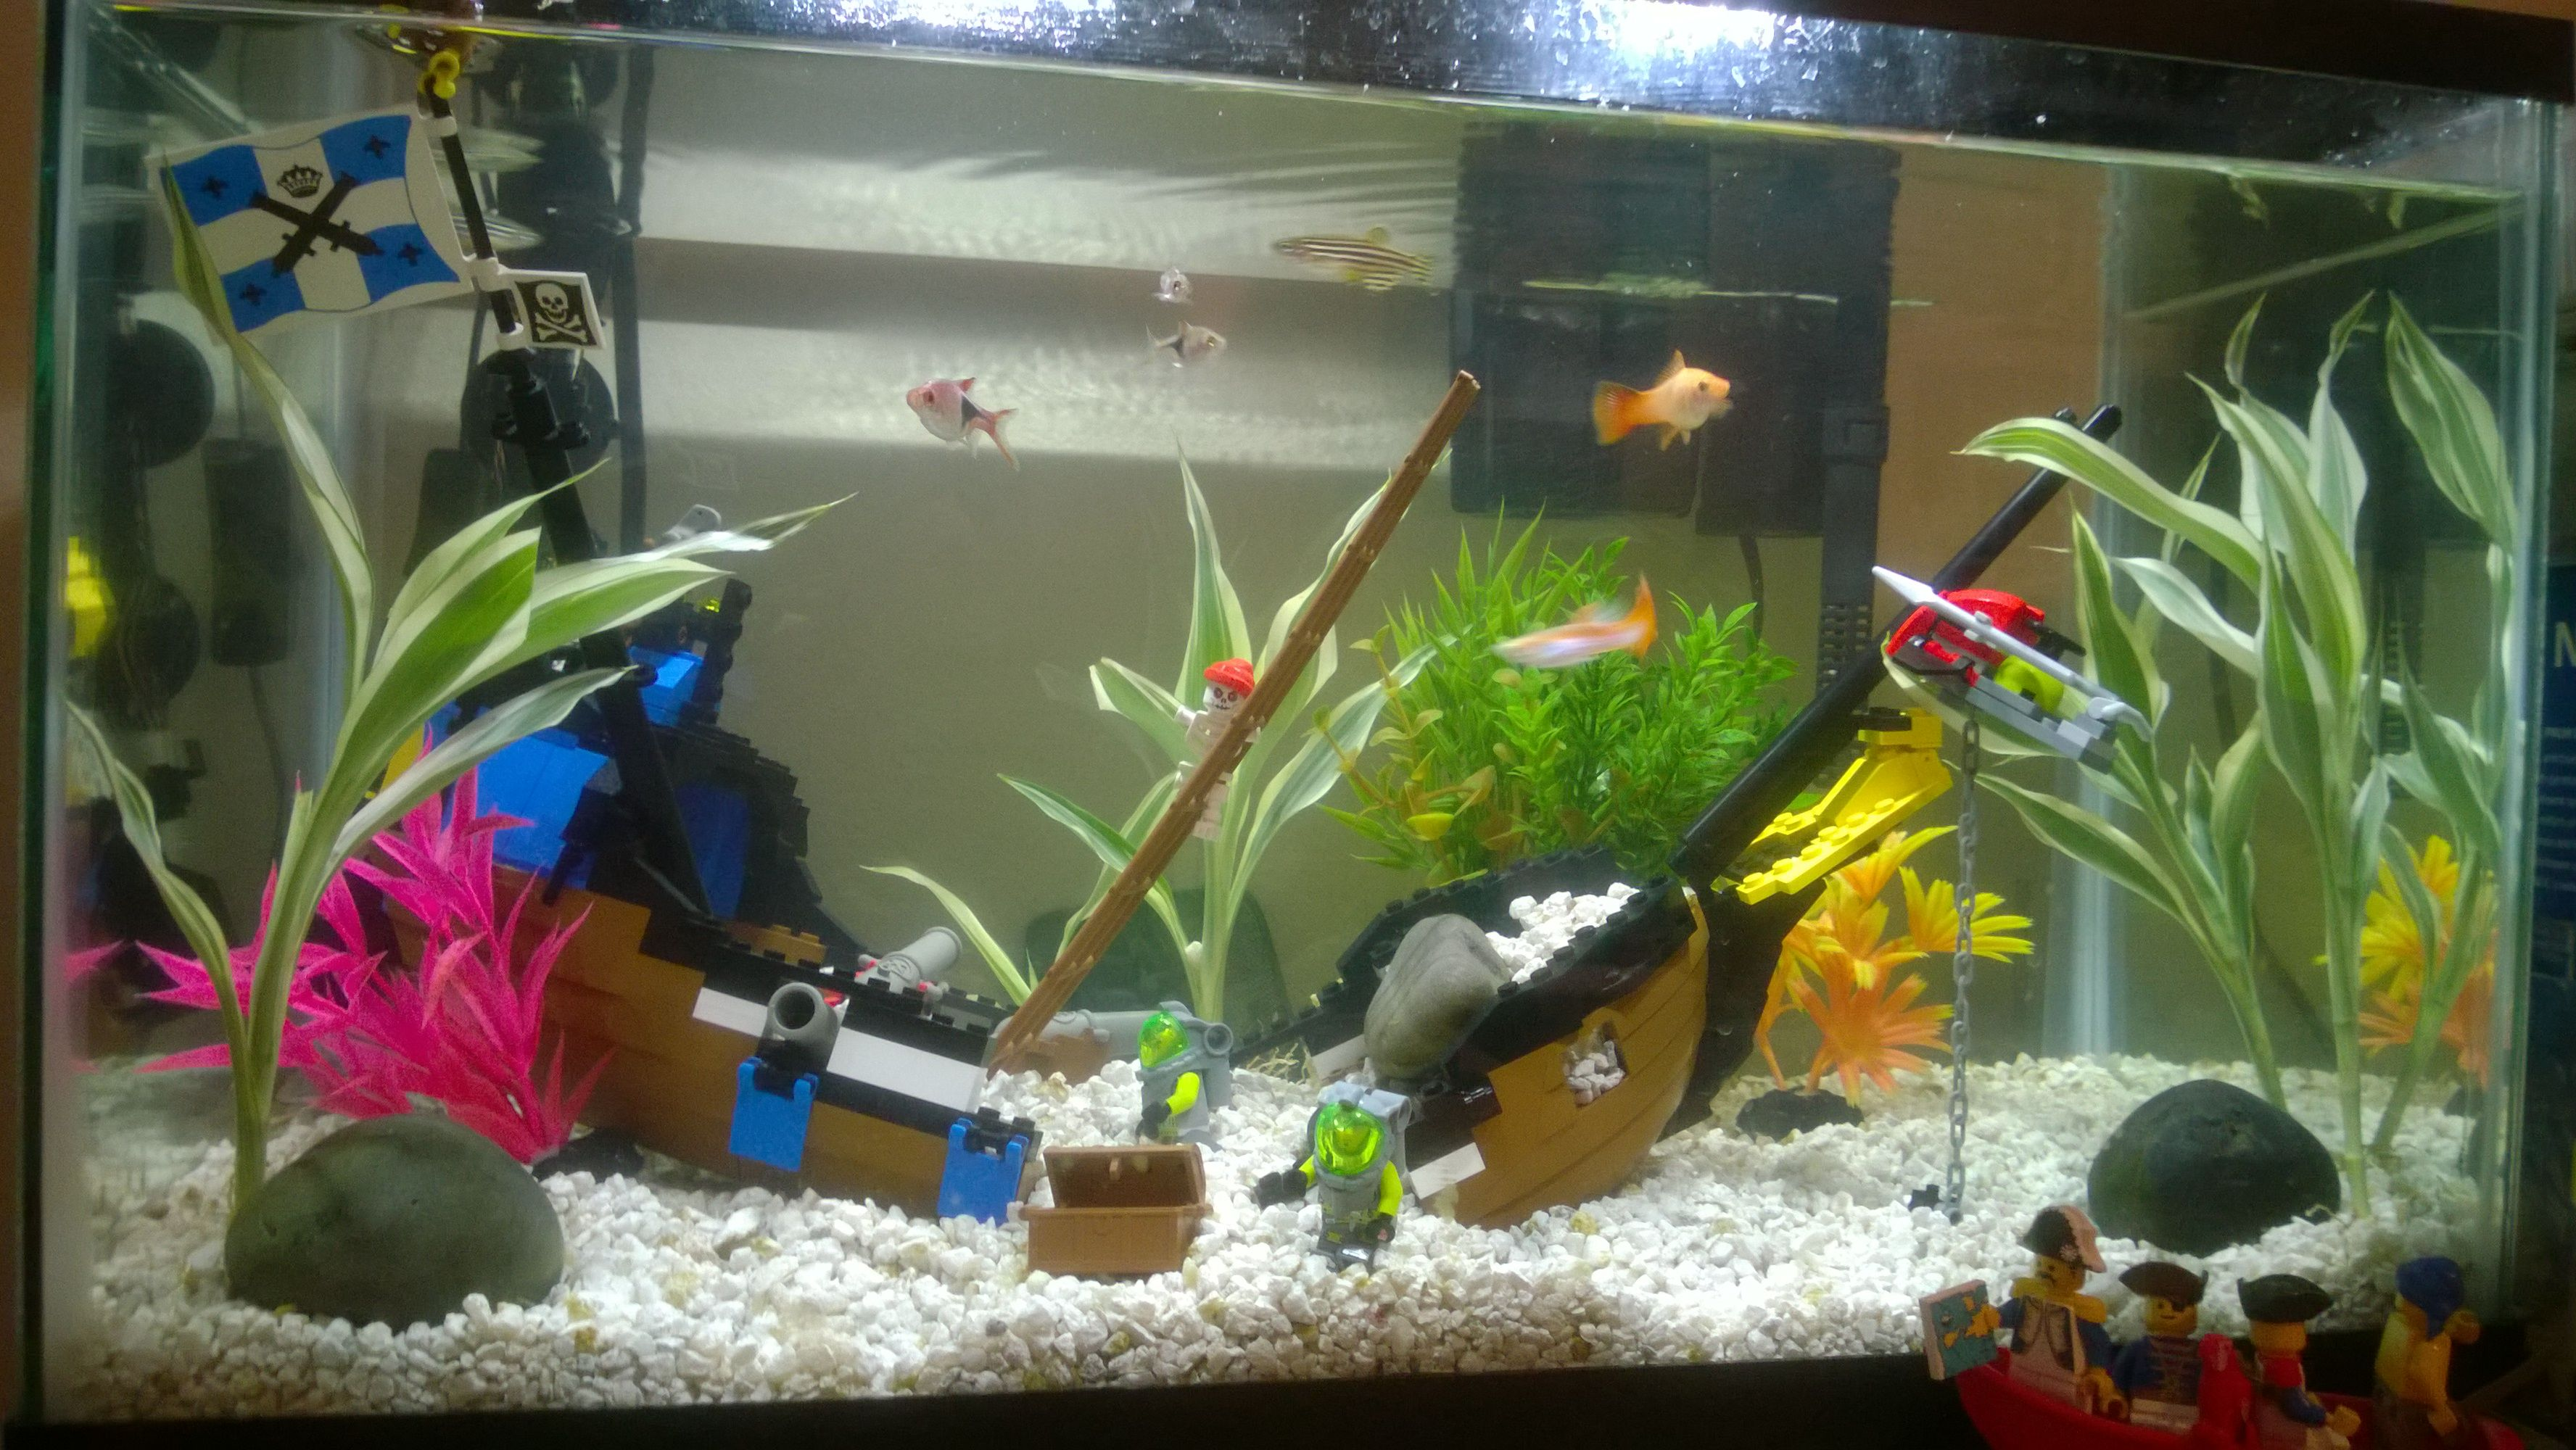 I Just Put The Finishing Touches On My Lego Shipwreck Fish Tank It